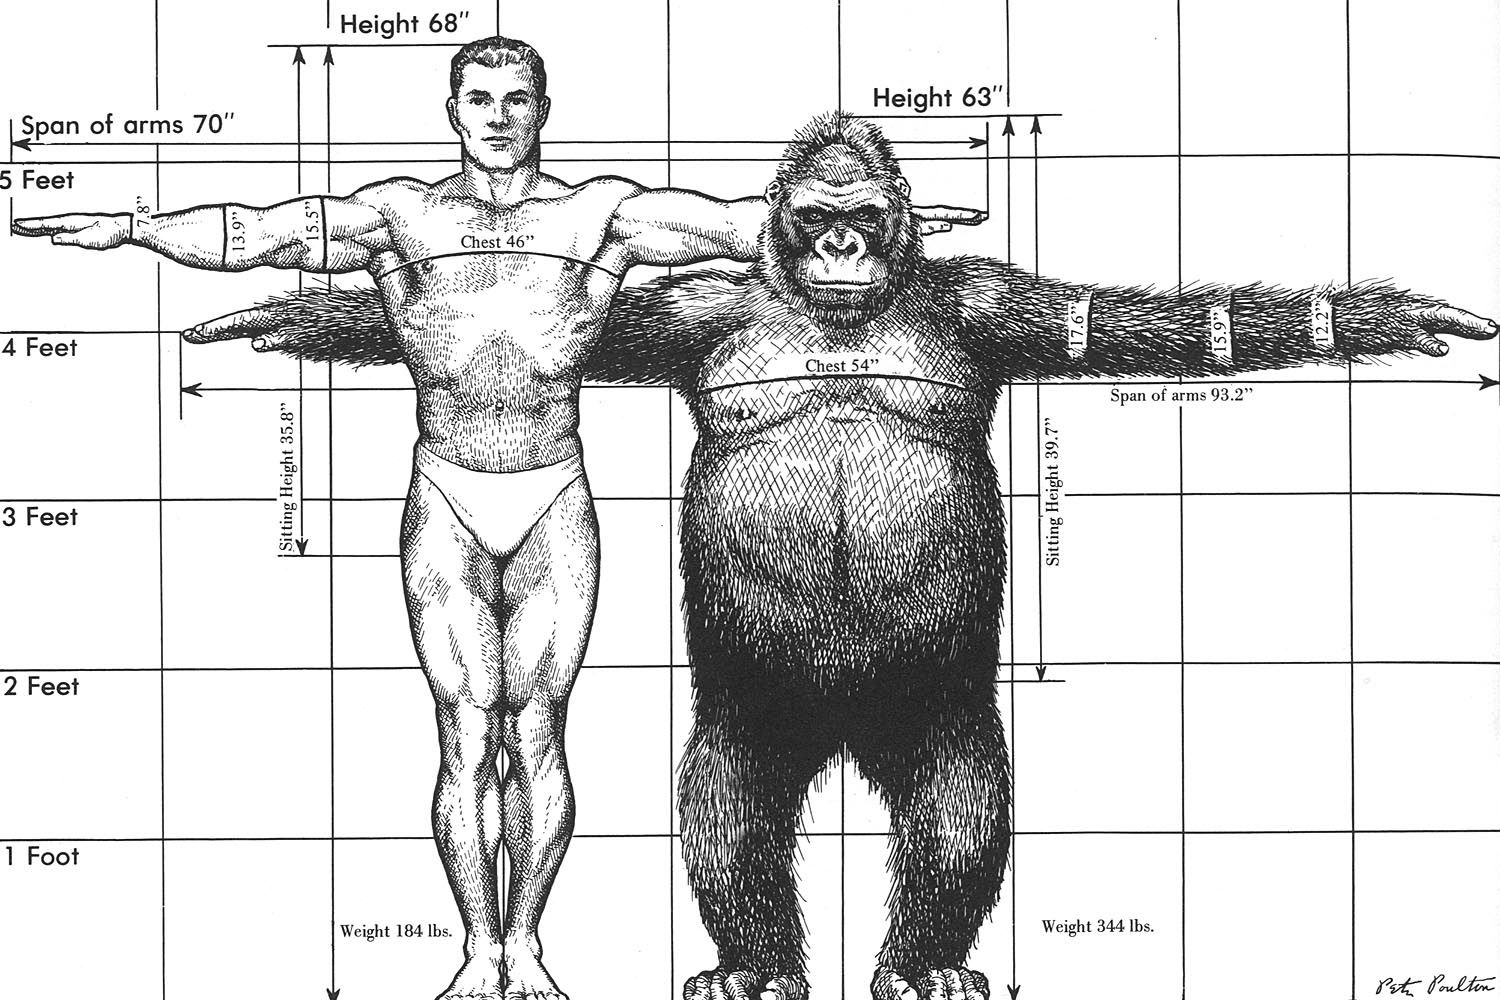 A comparison of the height, weight, and arm-span of a human and a ...